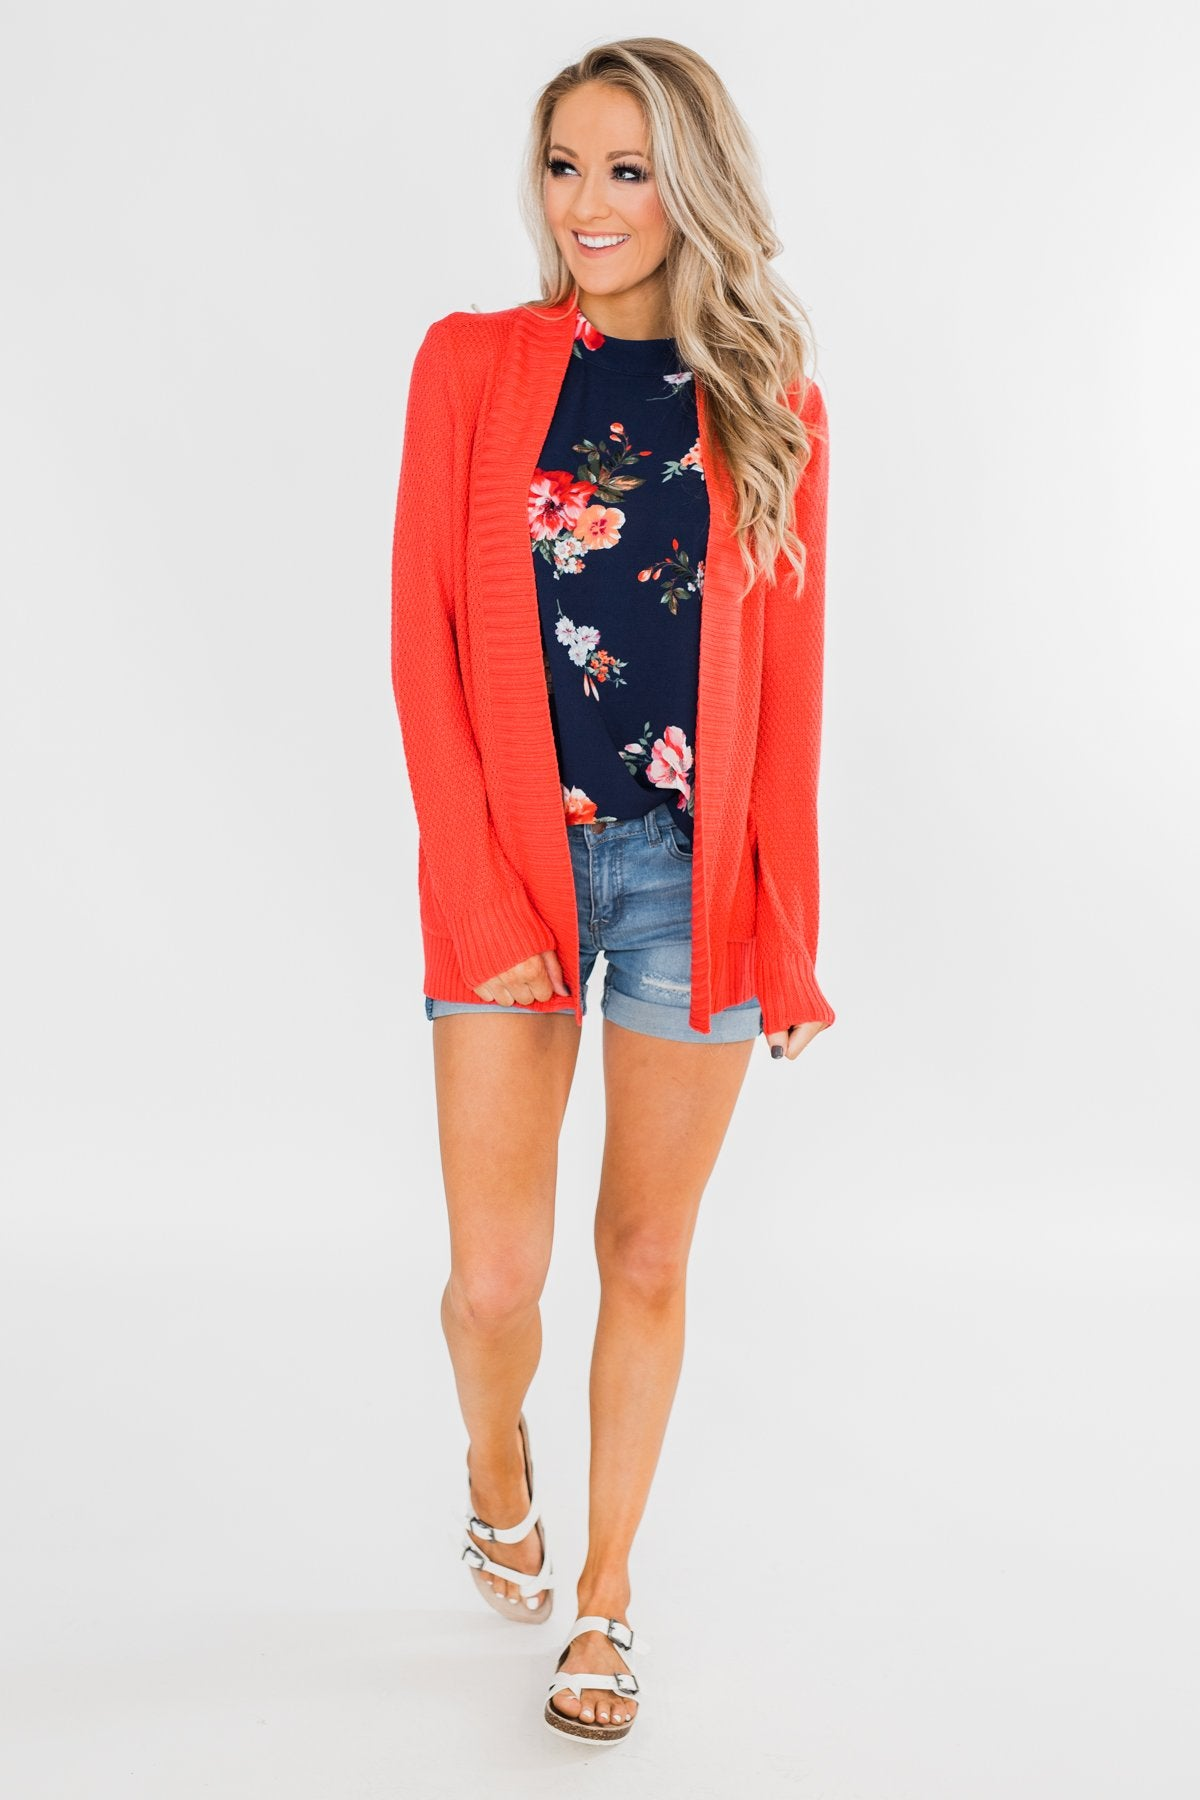 Welcoming To You Knitted Cardigan- Vibrant Coral